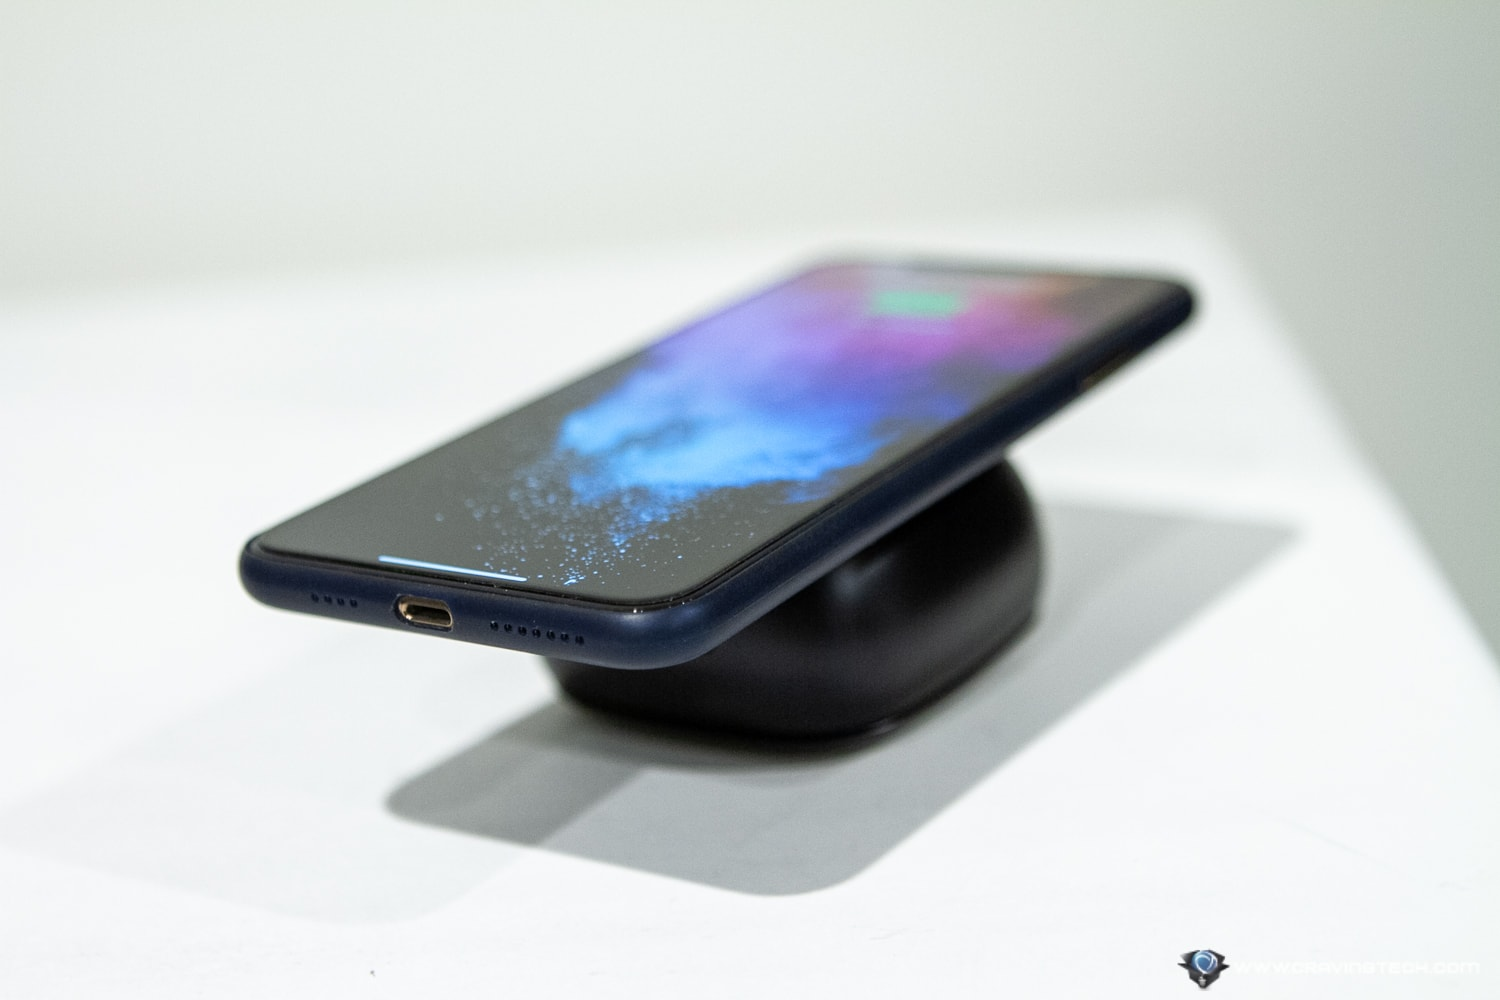 PaMu Slide Review - Wireless Charging